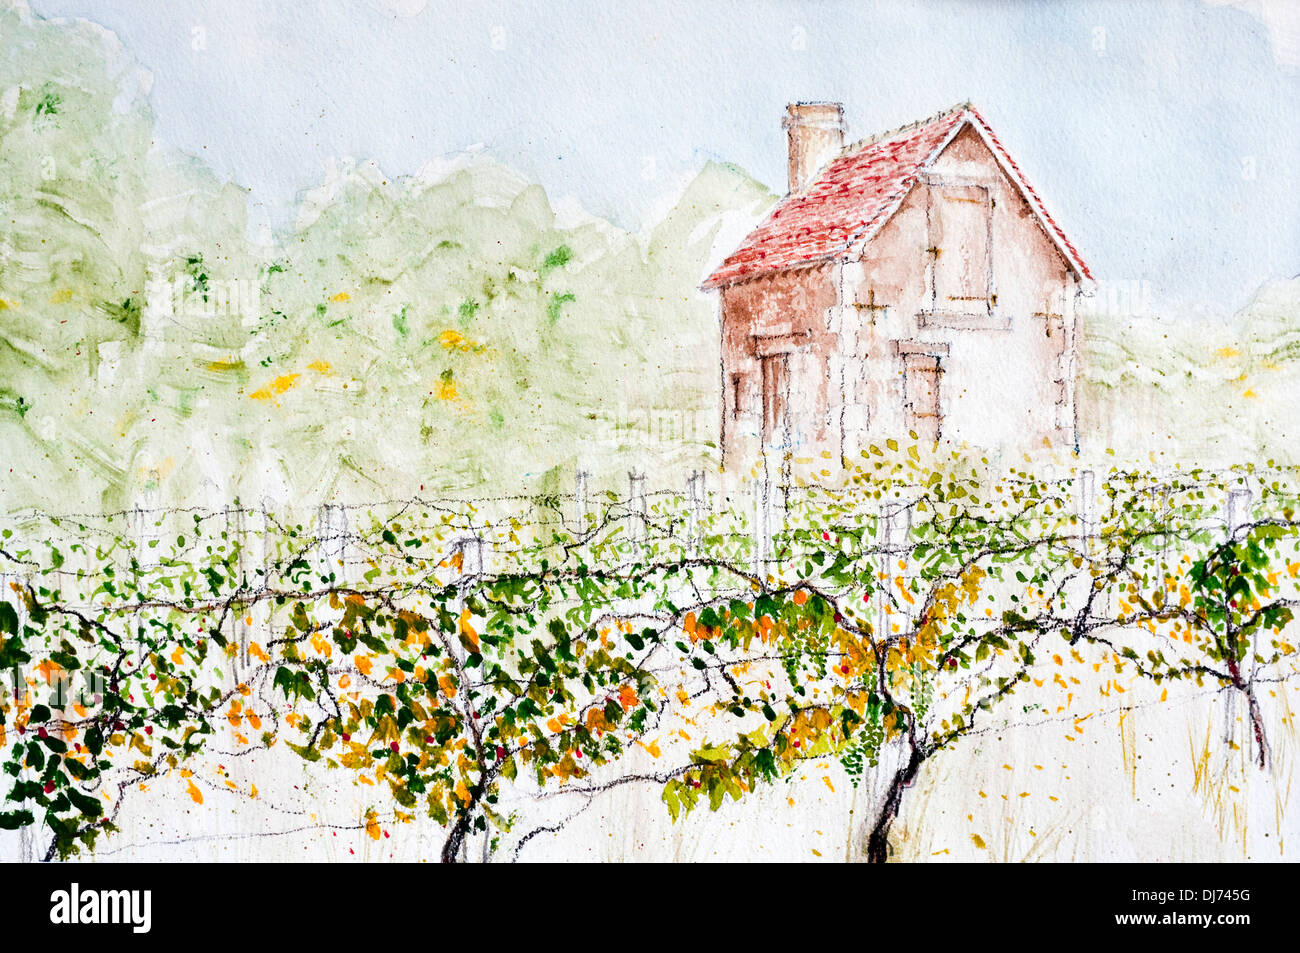 Watercolour painting of 'Maison des vignes' house in small vineyard by Ed Buziak - France. - Stock Image